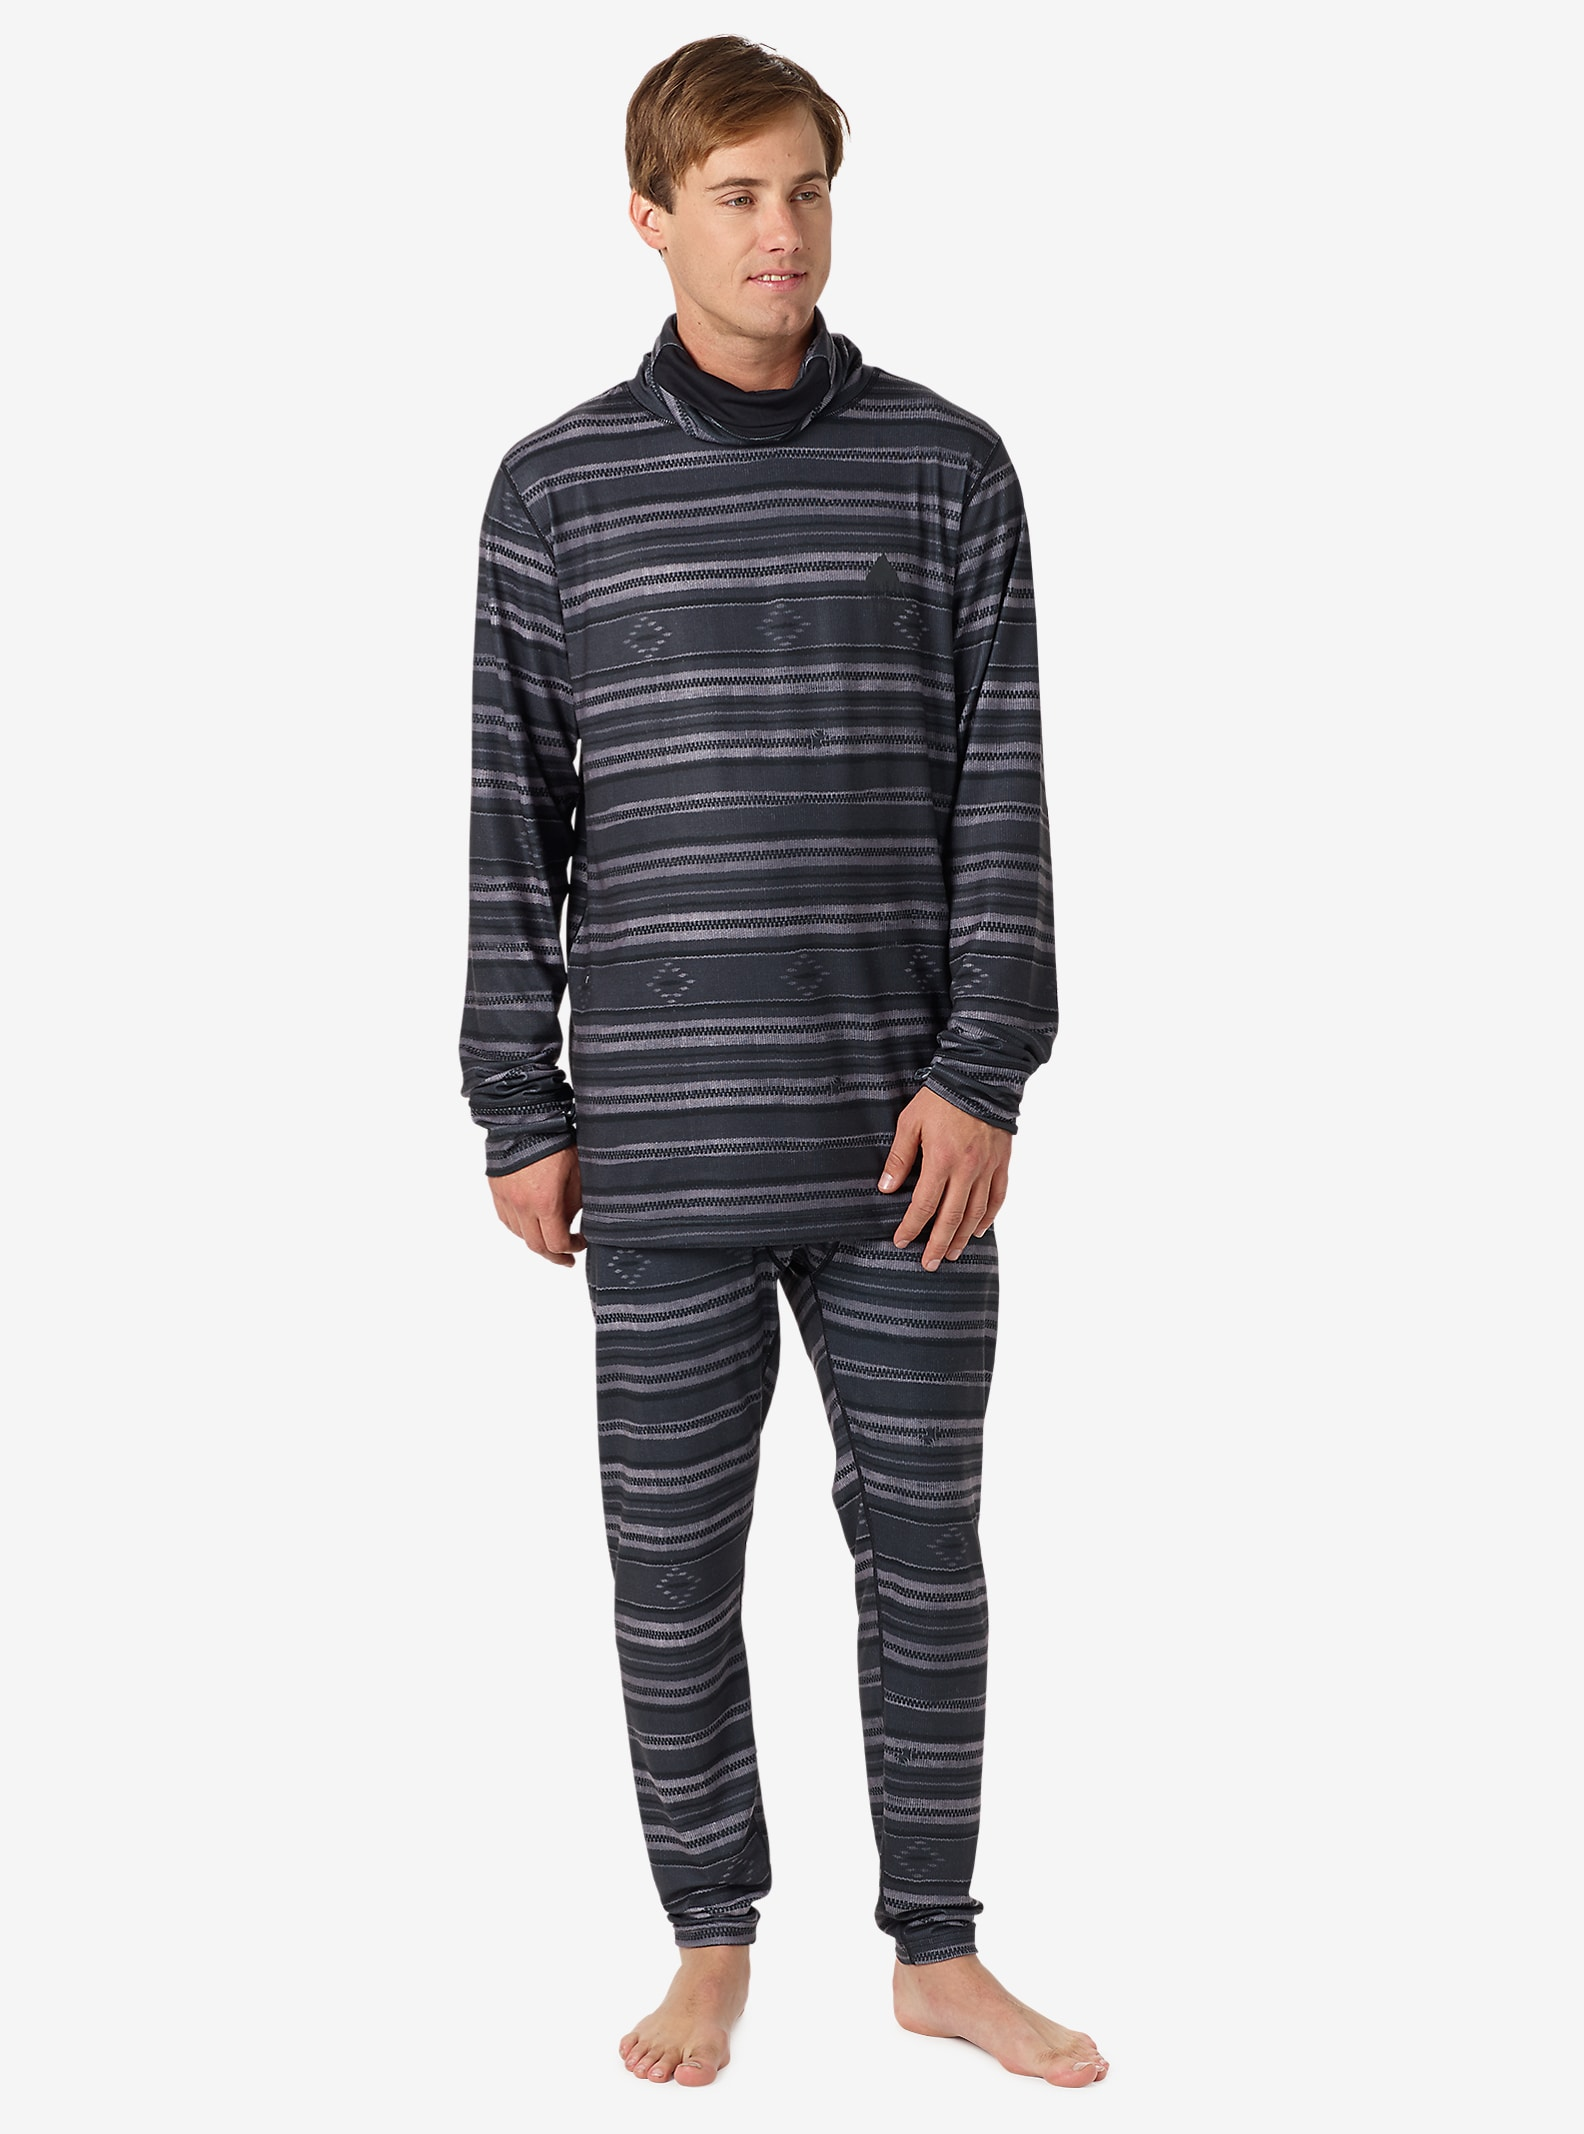 Burton Midweight Base Layer Long Neck shown in Faded Stag Stripe